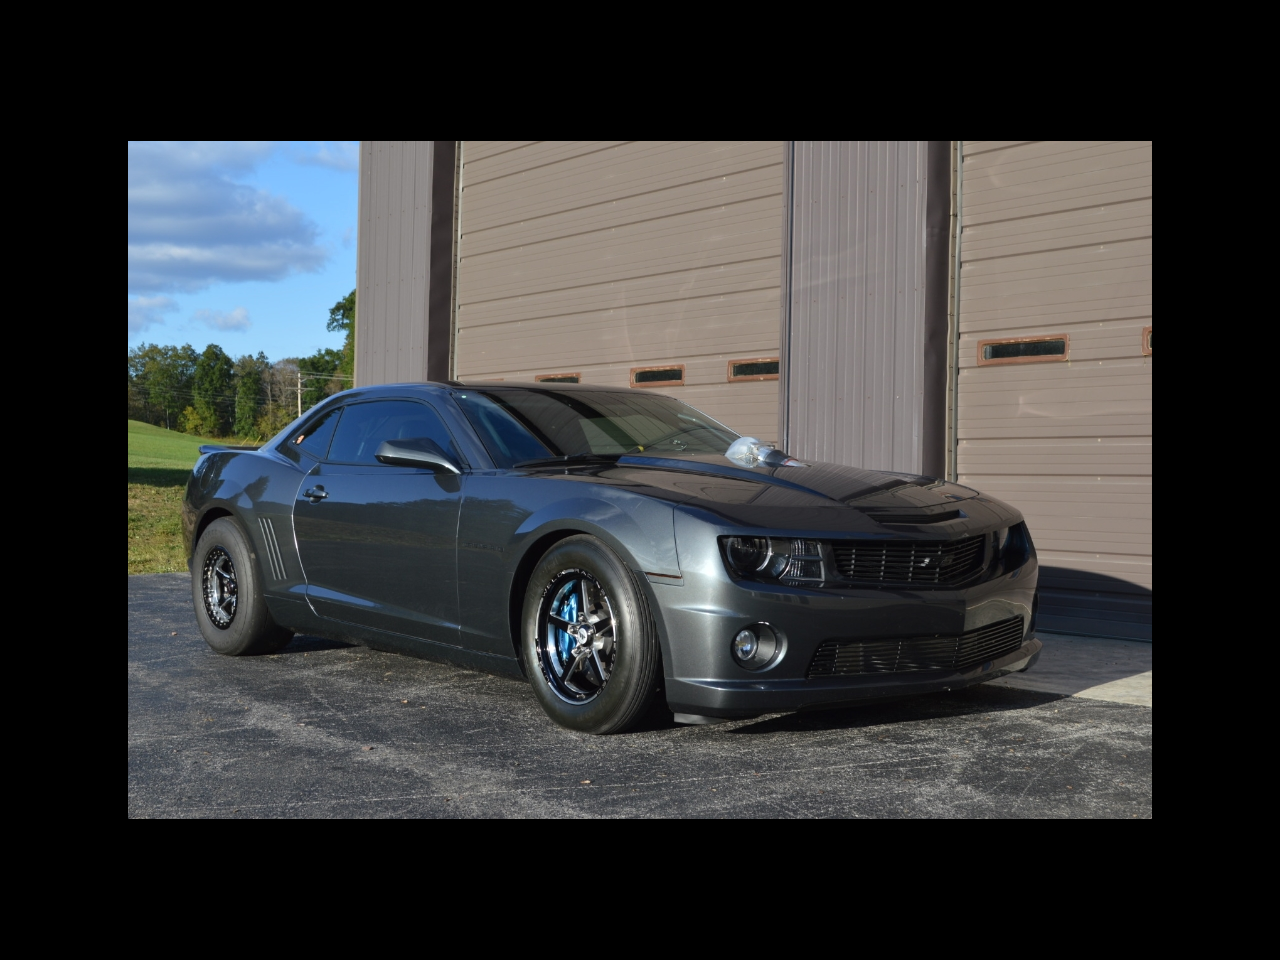 2010 Chevrolet Camaro 427ci Twin Turbo 1500hp Drag Car